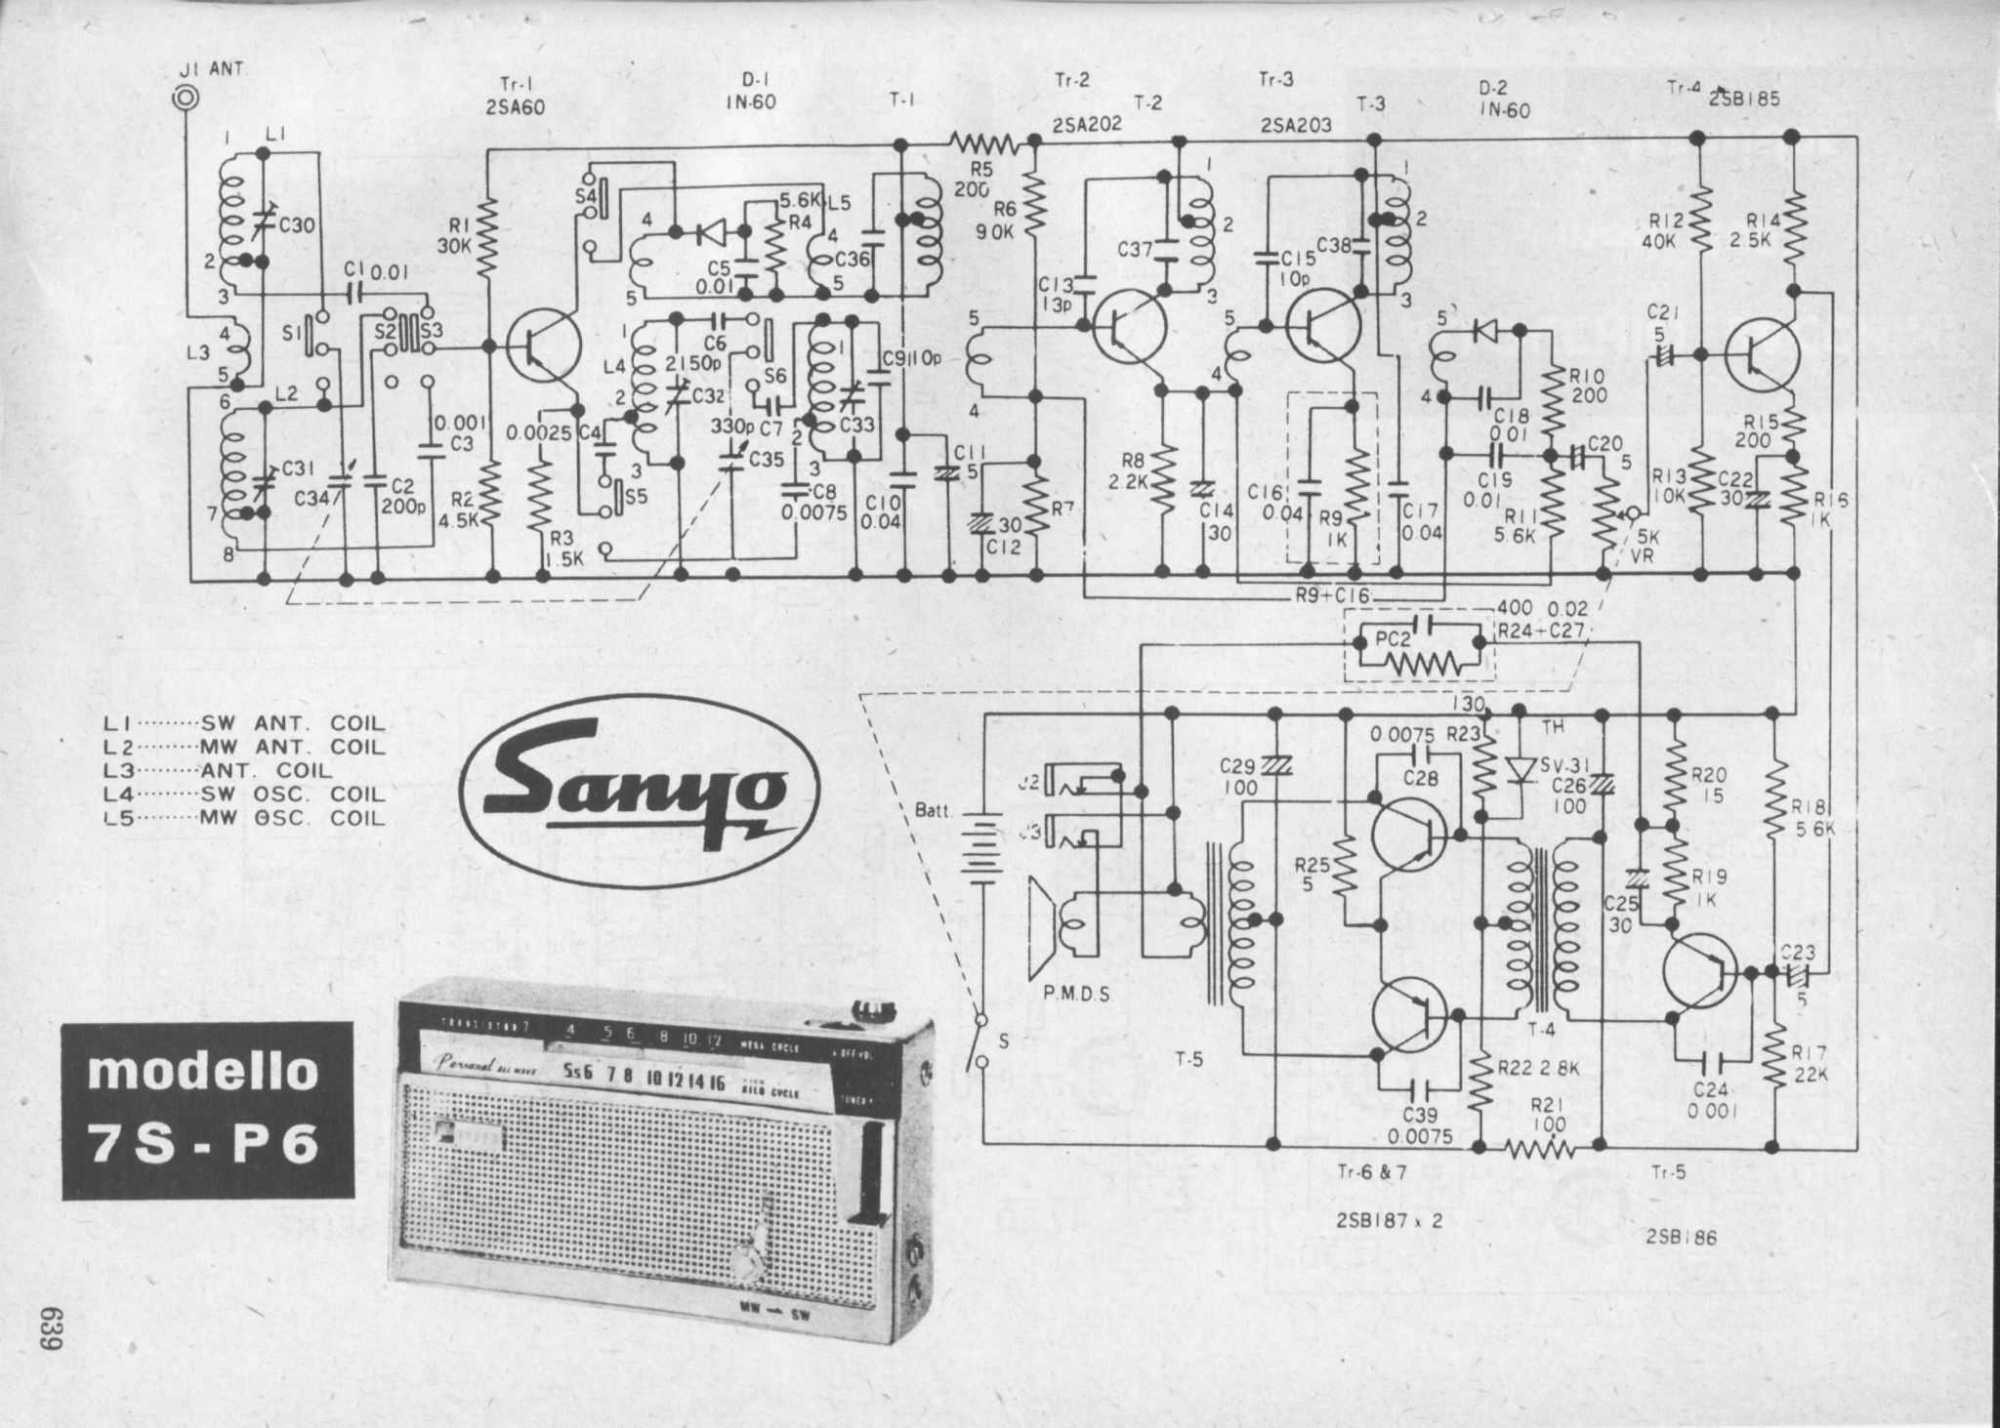 hight resolution of sanyo schematic diagram wiring diagram expert sanyo st 21se1 schematic diagram sanyo schematic diagram